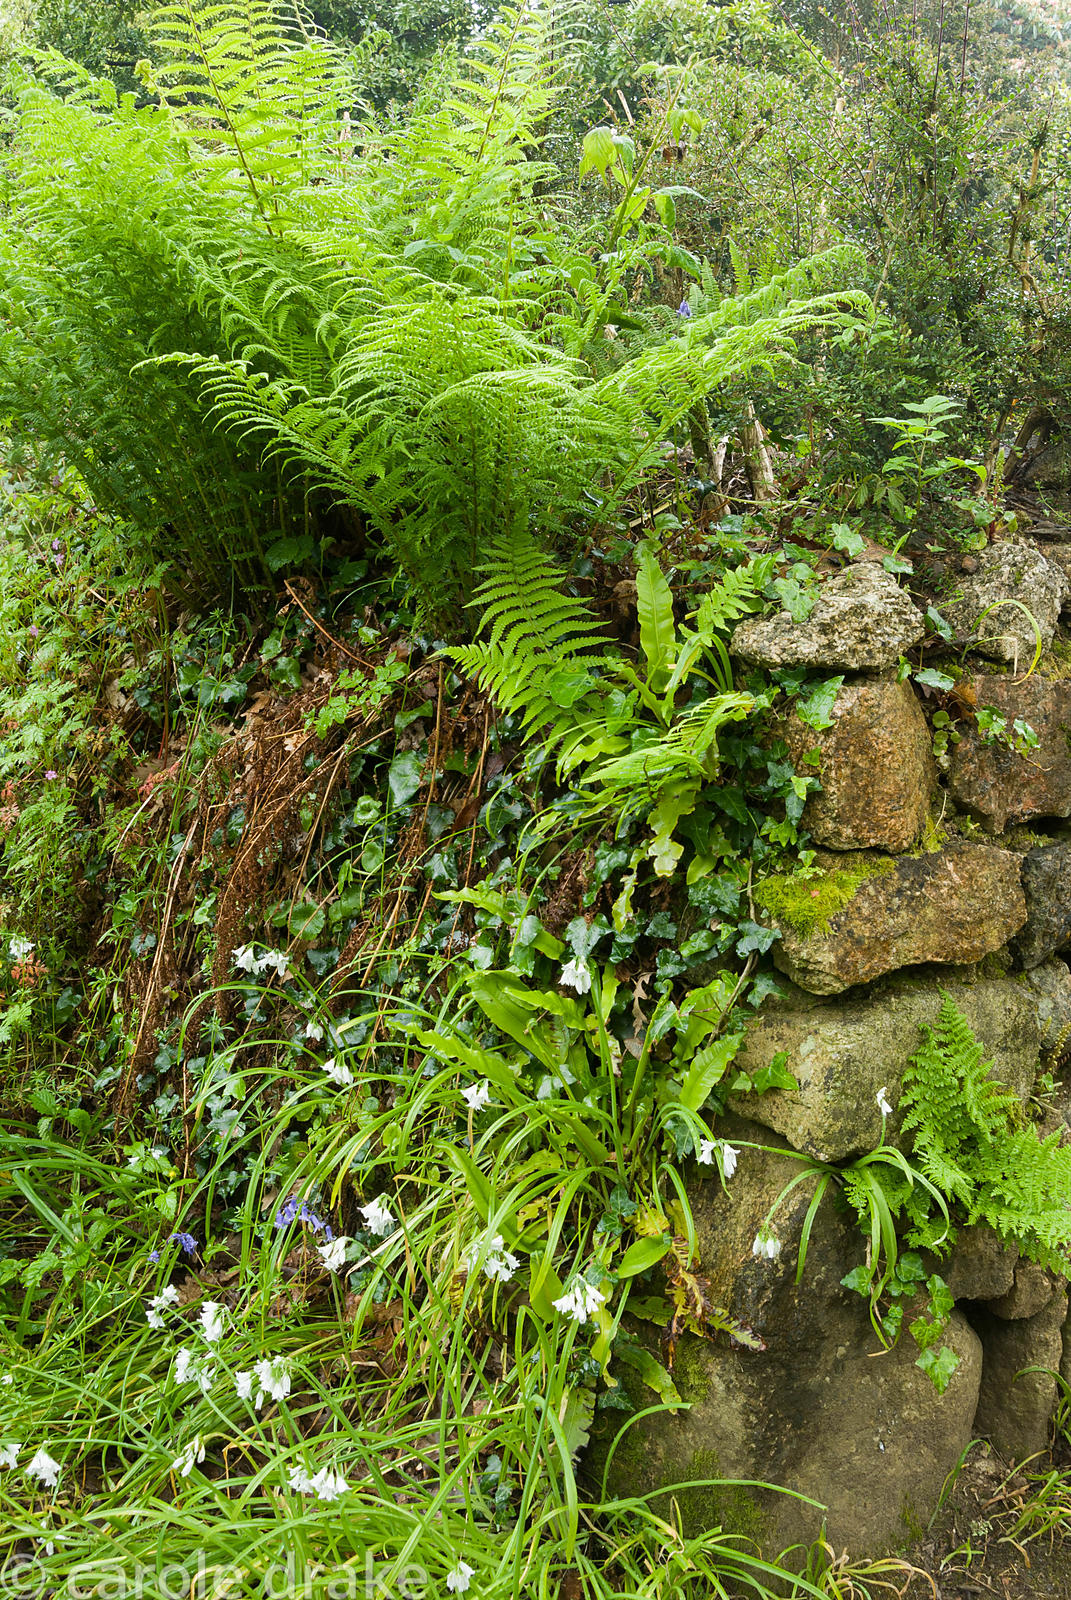 Stone wall colonised by ferns, navelwort, ivy and alliums. Trewidden, Buryas Bridge, Penzance, Cornwall, UK